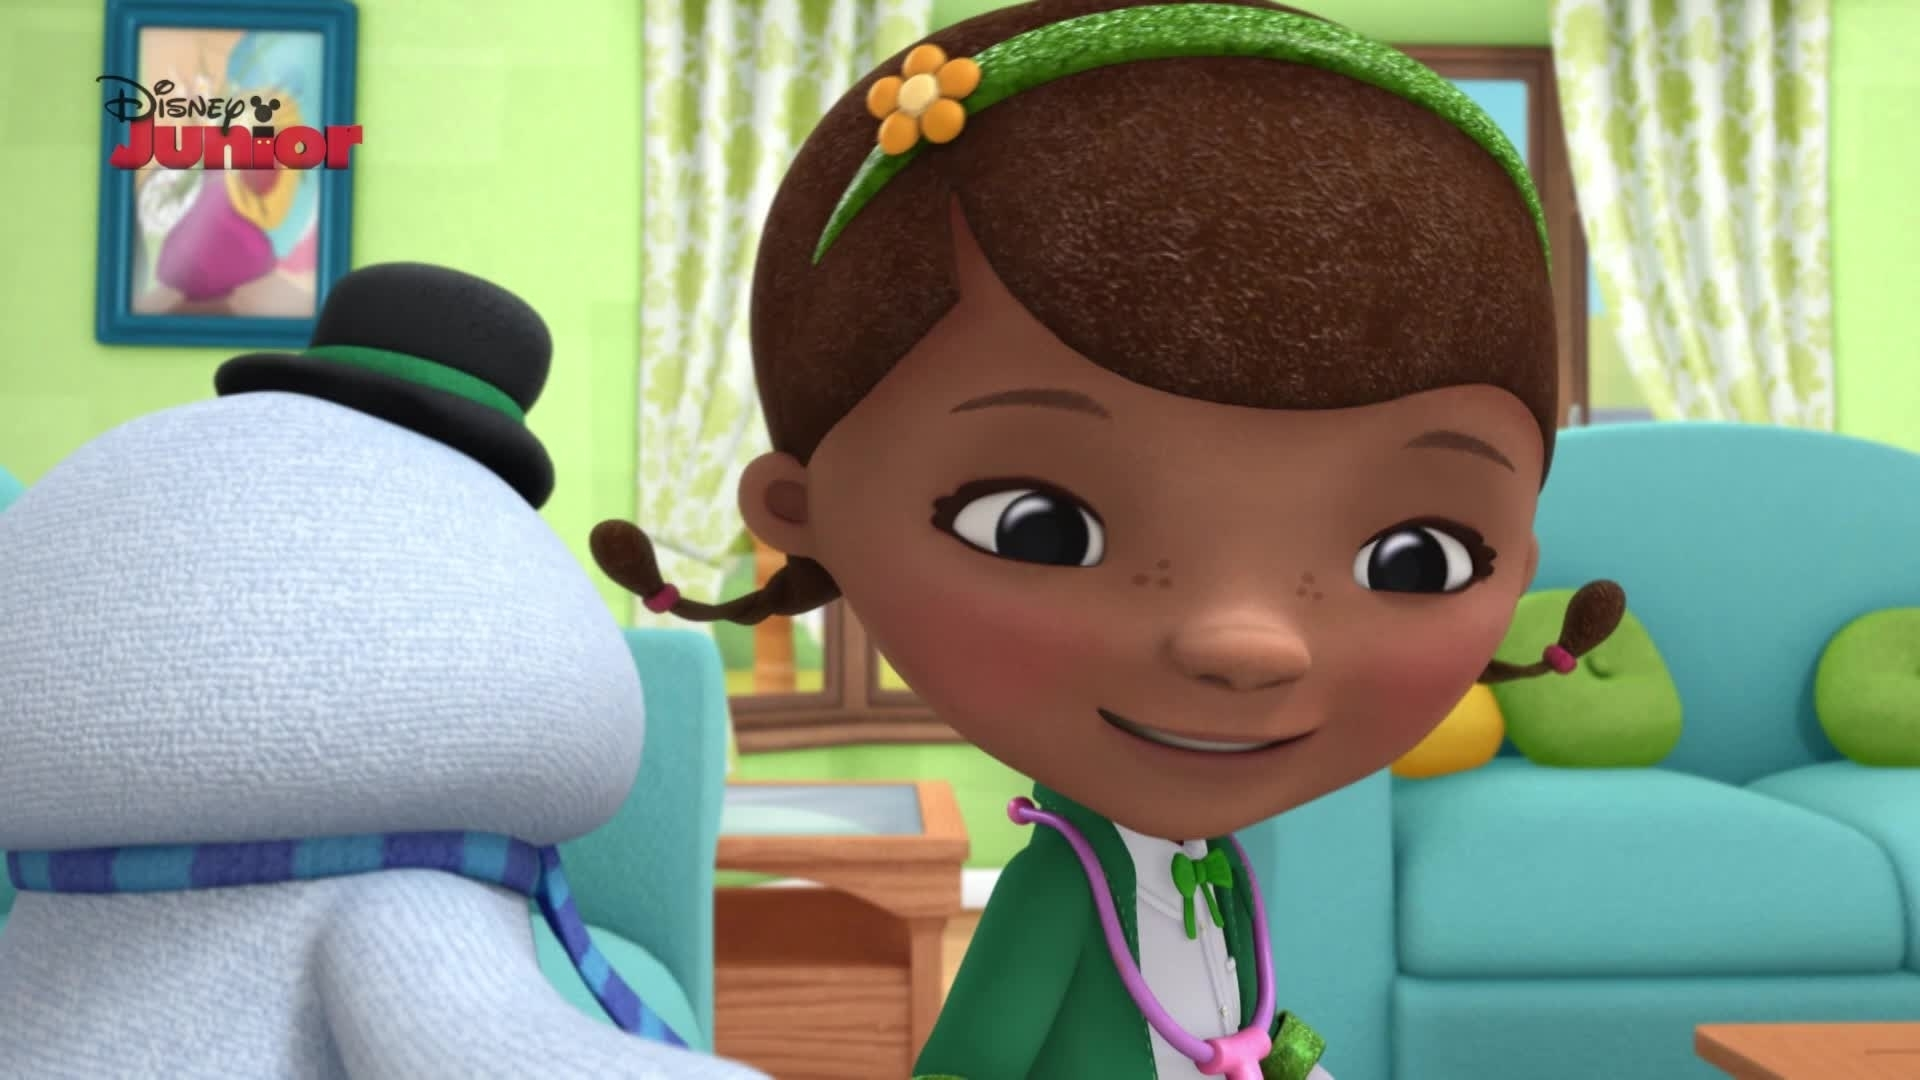 Irish McStuffins